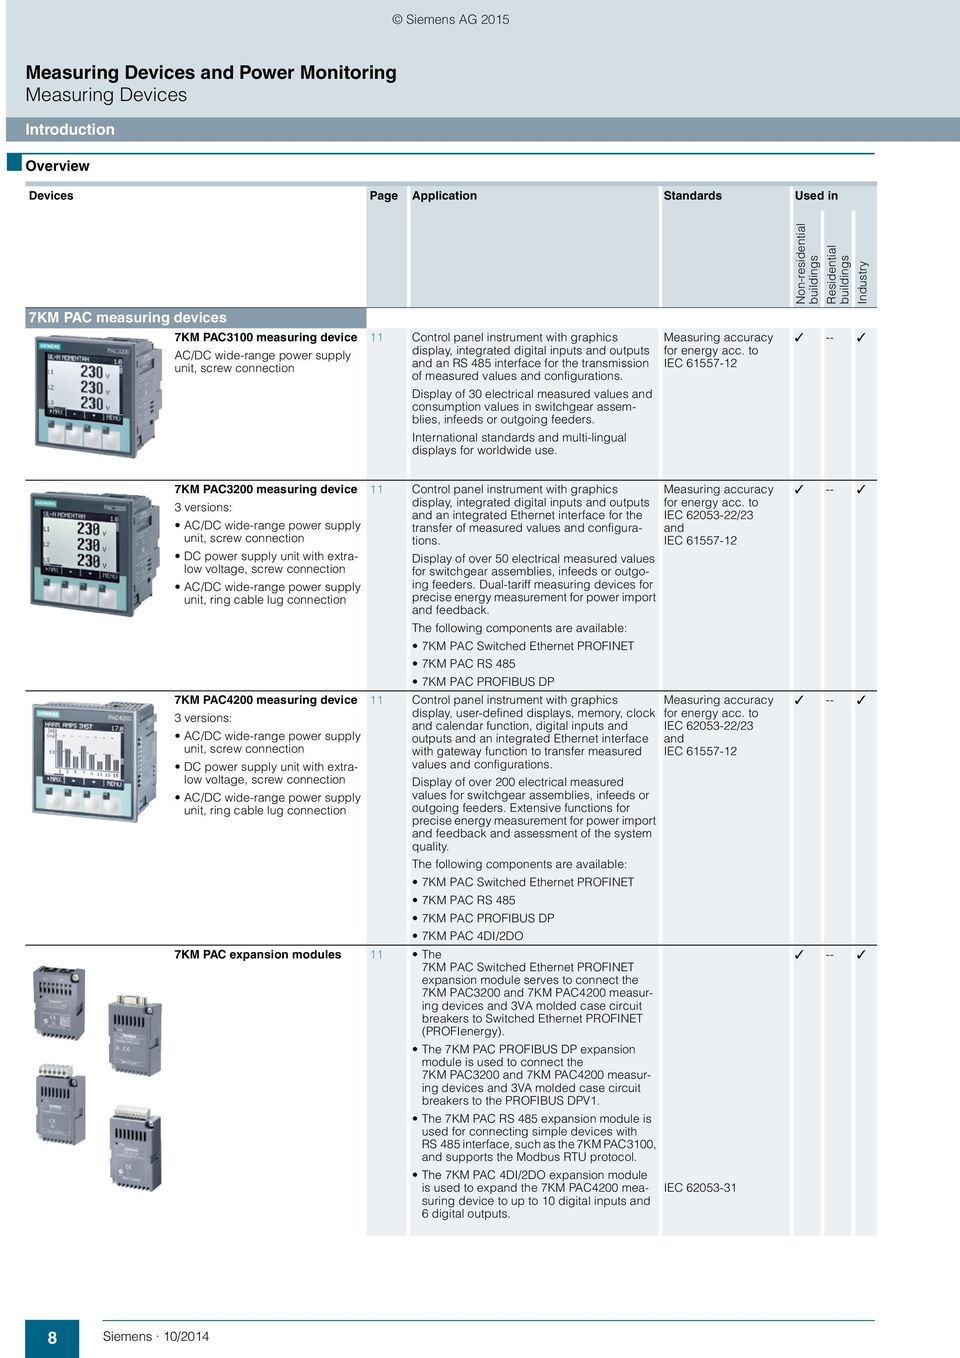 Measuring Devices And Power Monitoring Pdf Voltage Monitor Which Uses A Led To Show The Status Of Supply Display 30 Electrical Measured Values Consumption In Switchgear Assemblies